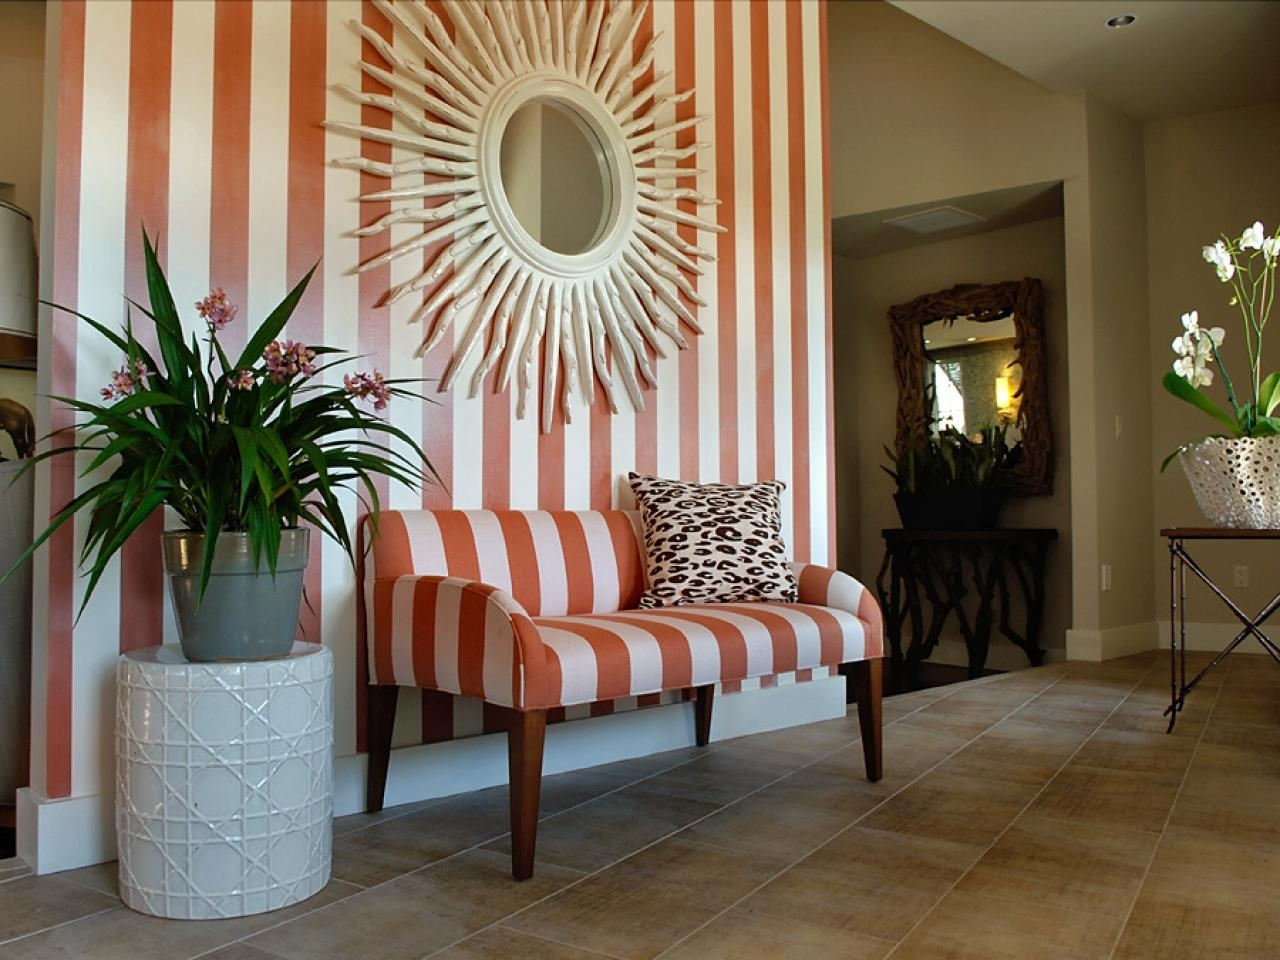 Interior | Striped Foyer Theme With Sunburst Wall Mirror Decor In Best And Newest Entrance Wall Accents (View 11 of 15)